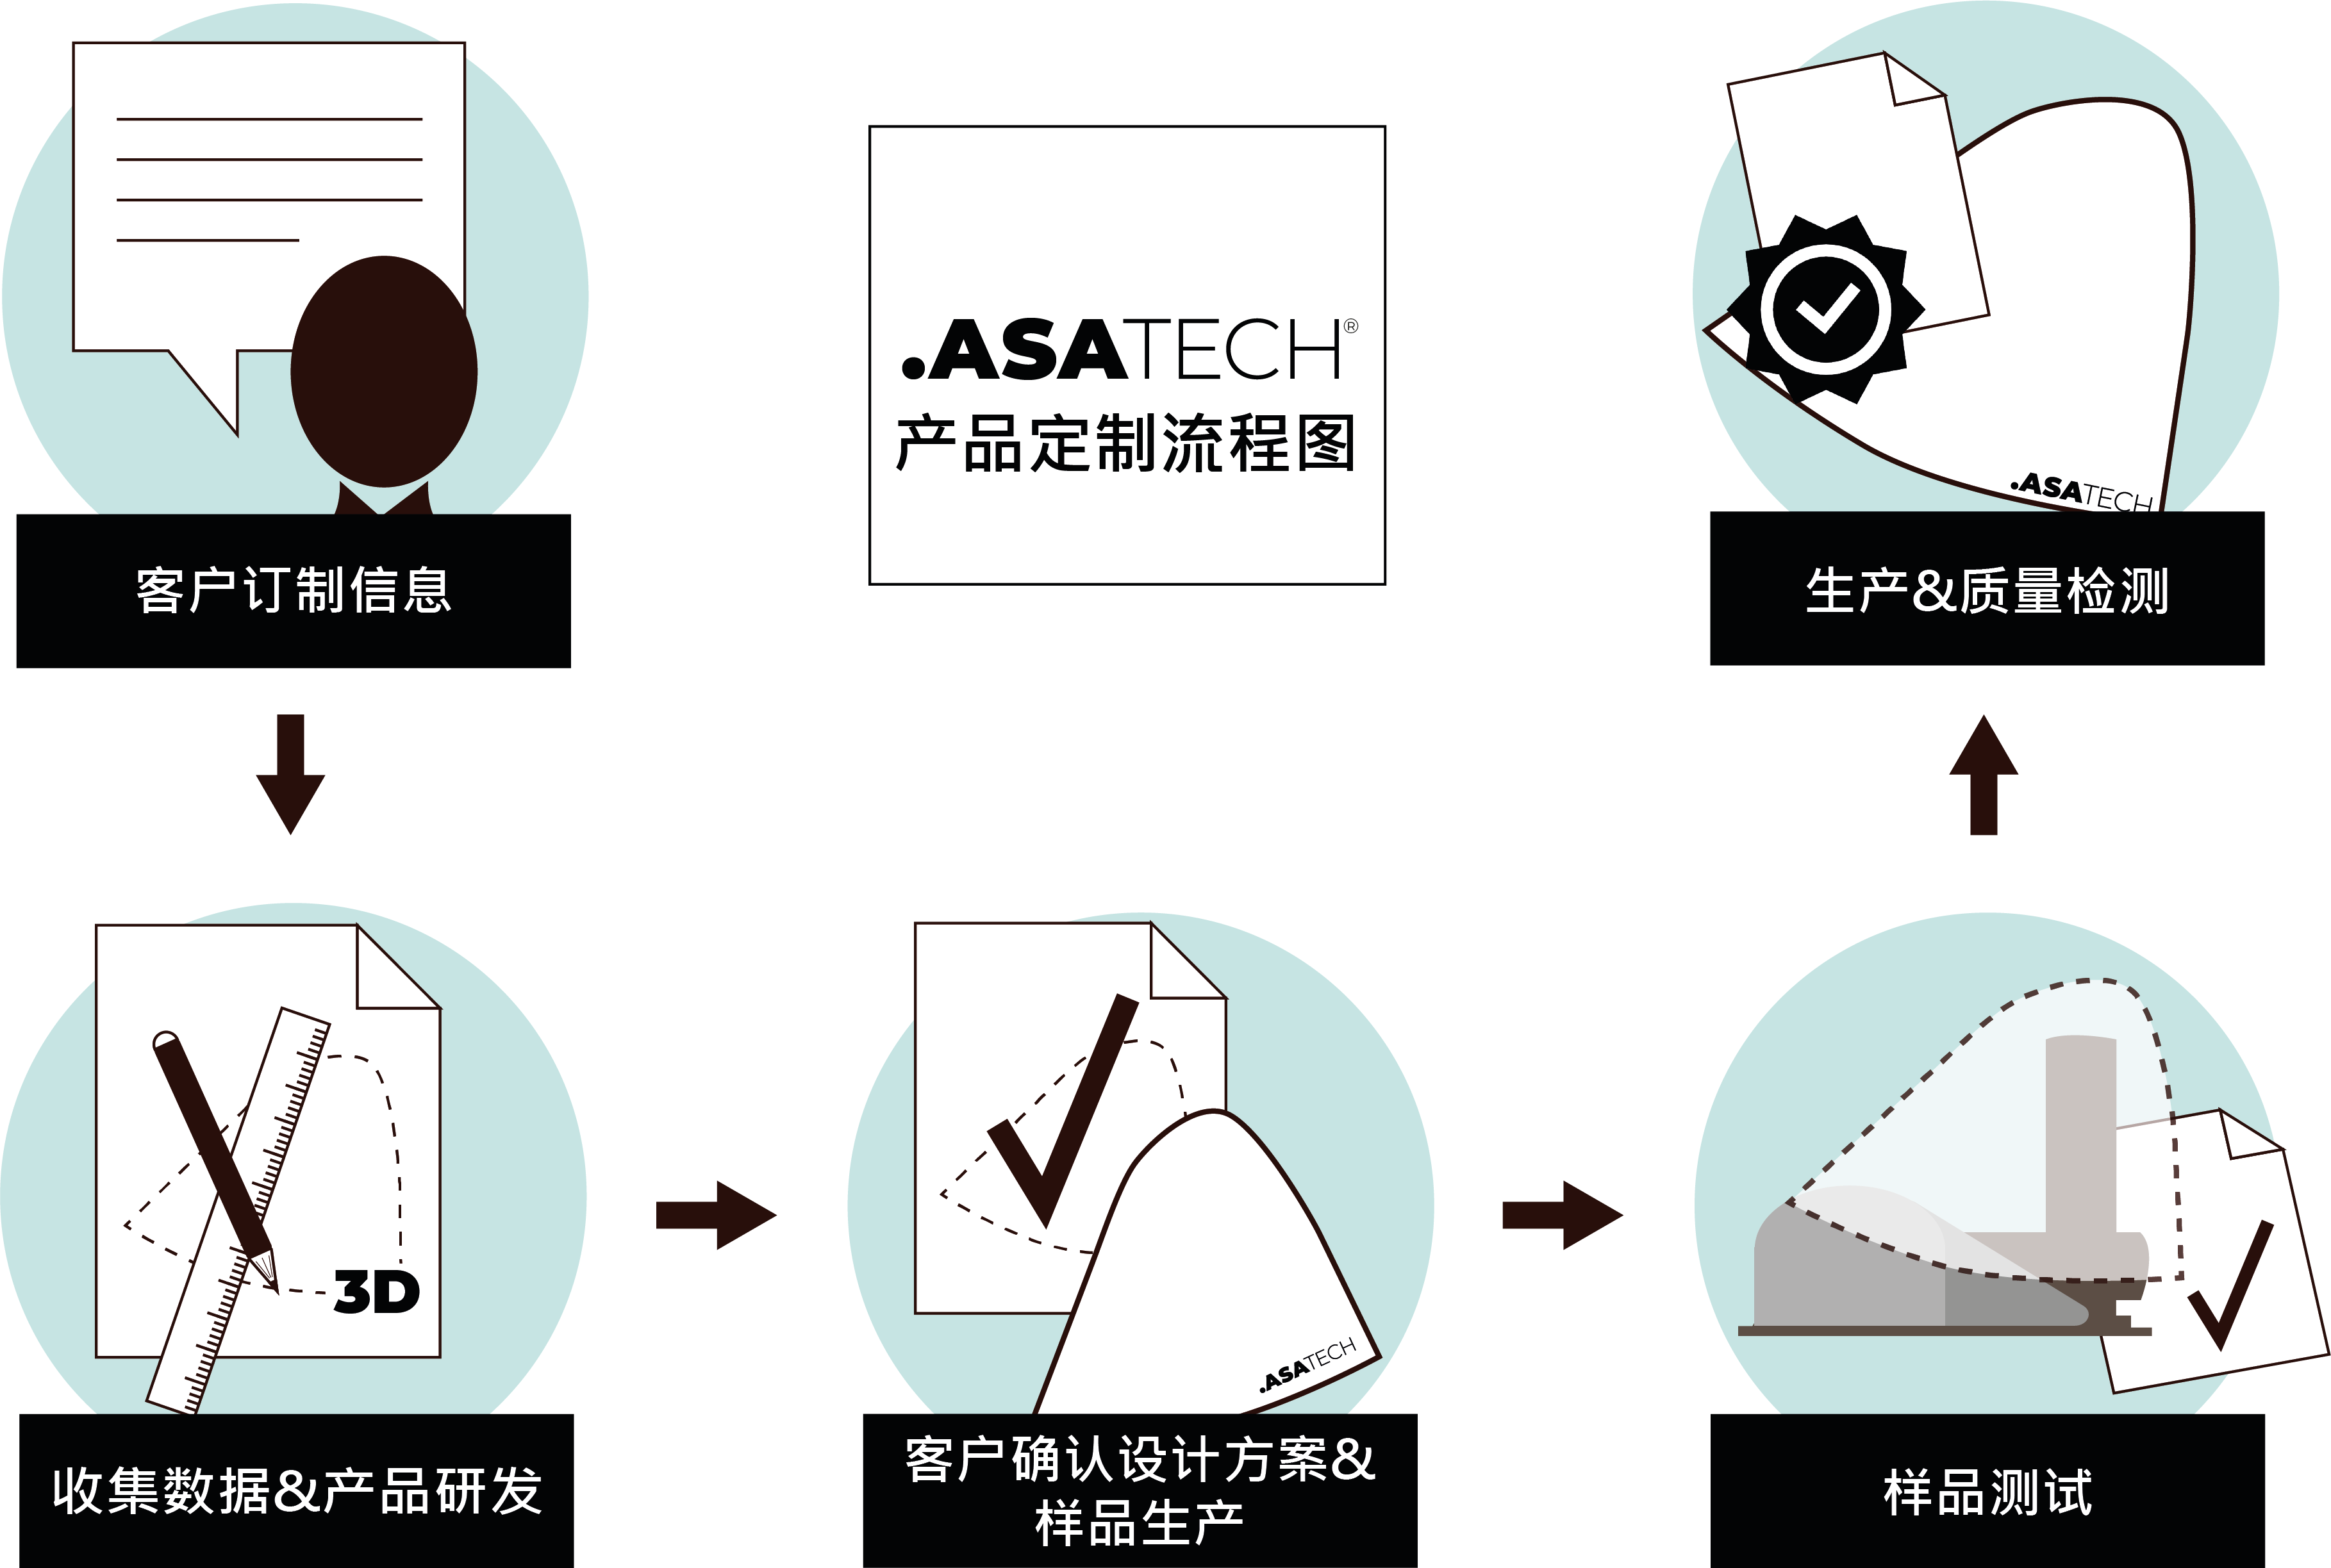 2019.07.10 ASATECH chinese customer proces guide web